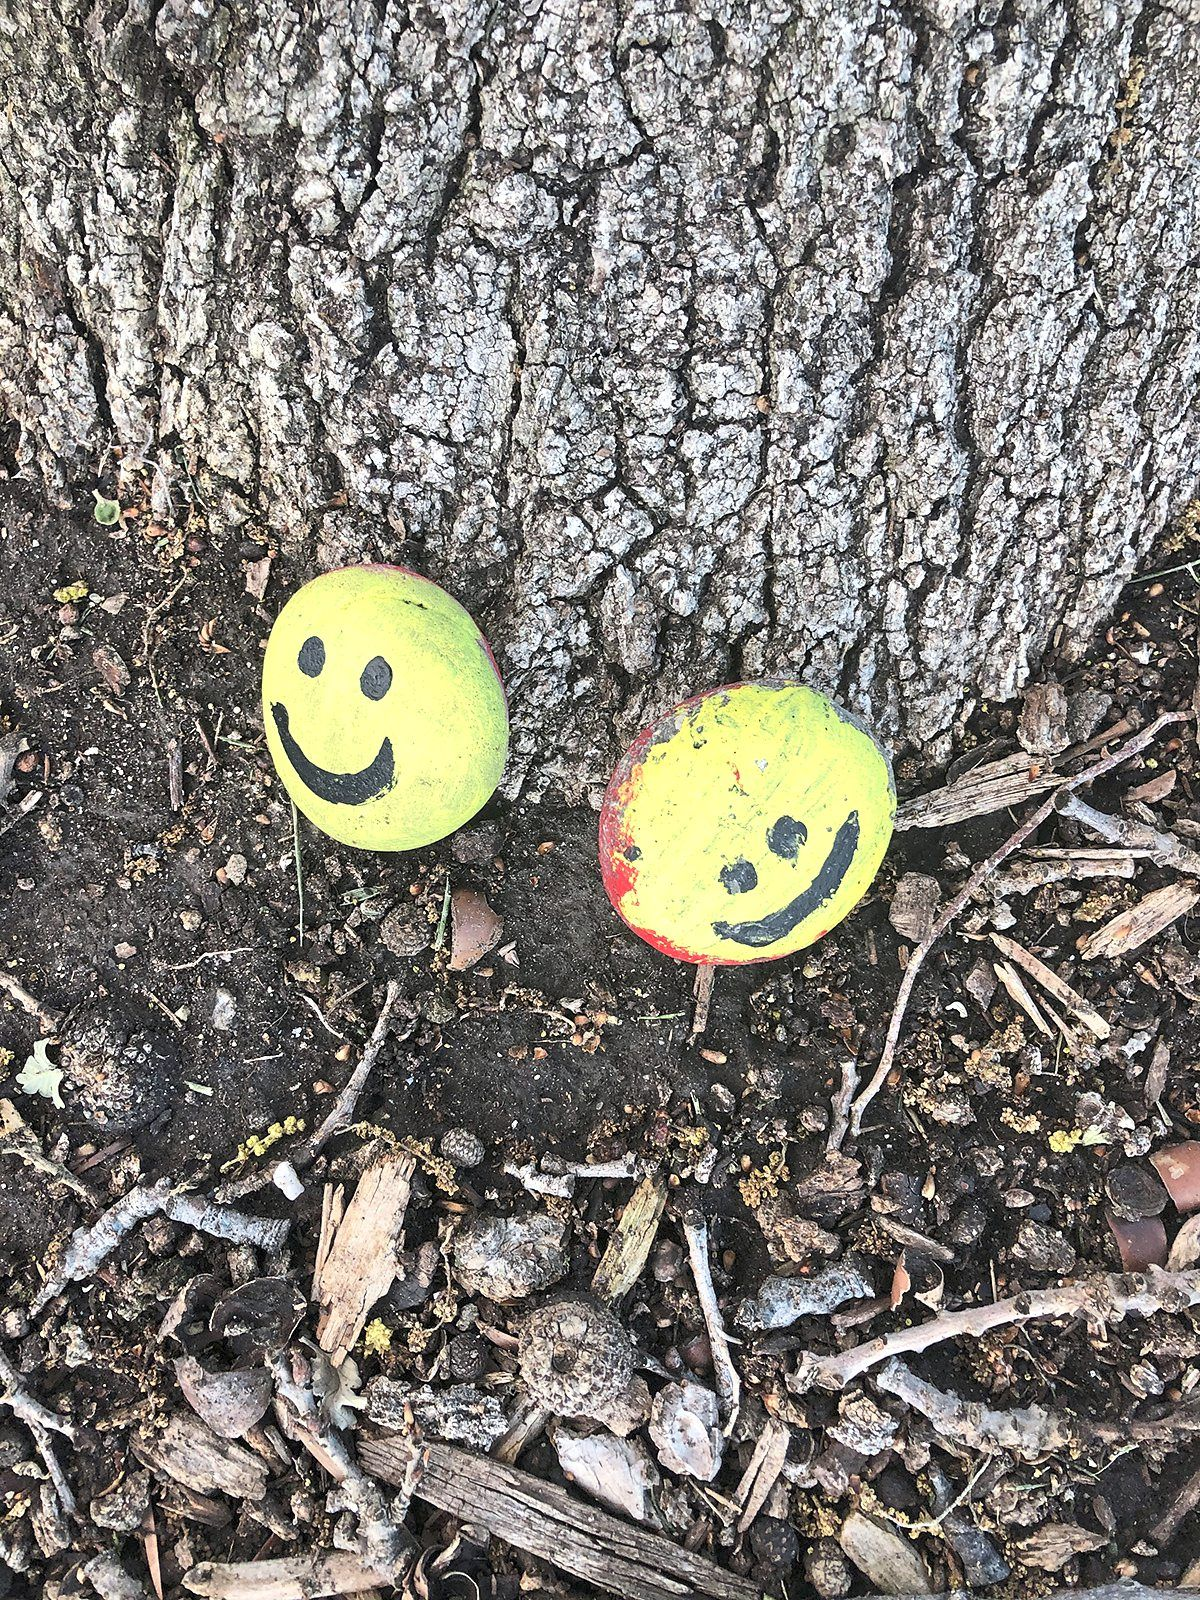 These two smiley-faced rocks are the work of Clarke, the former president of Honda Racing Development.